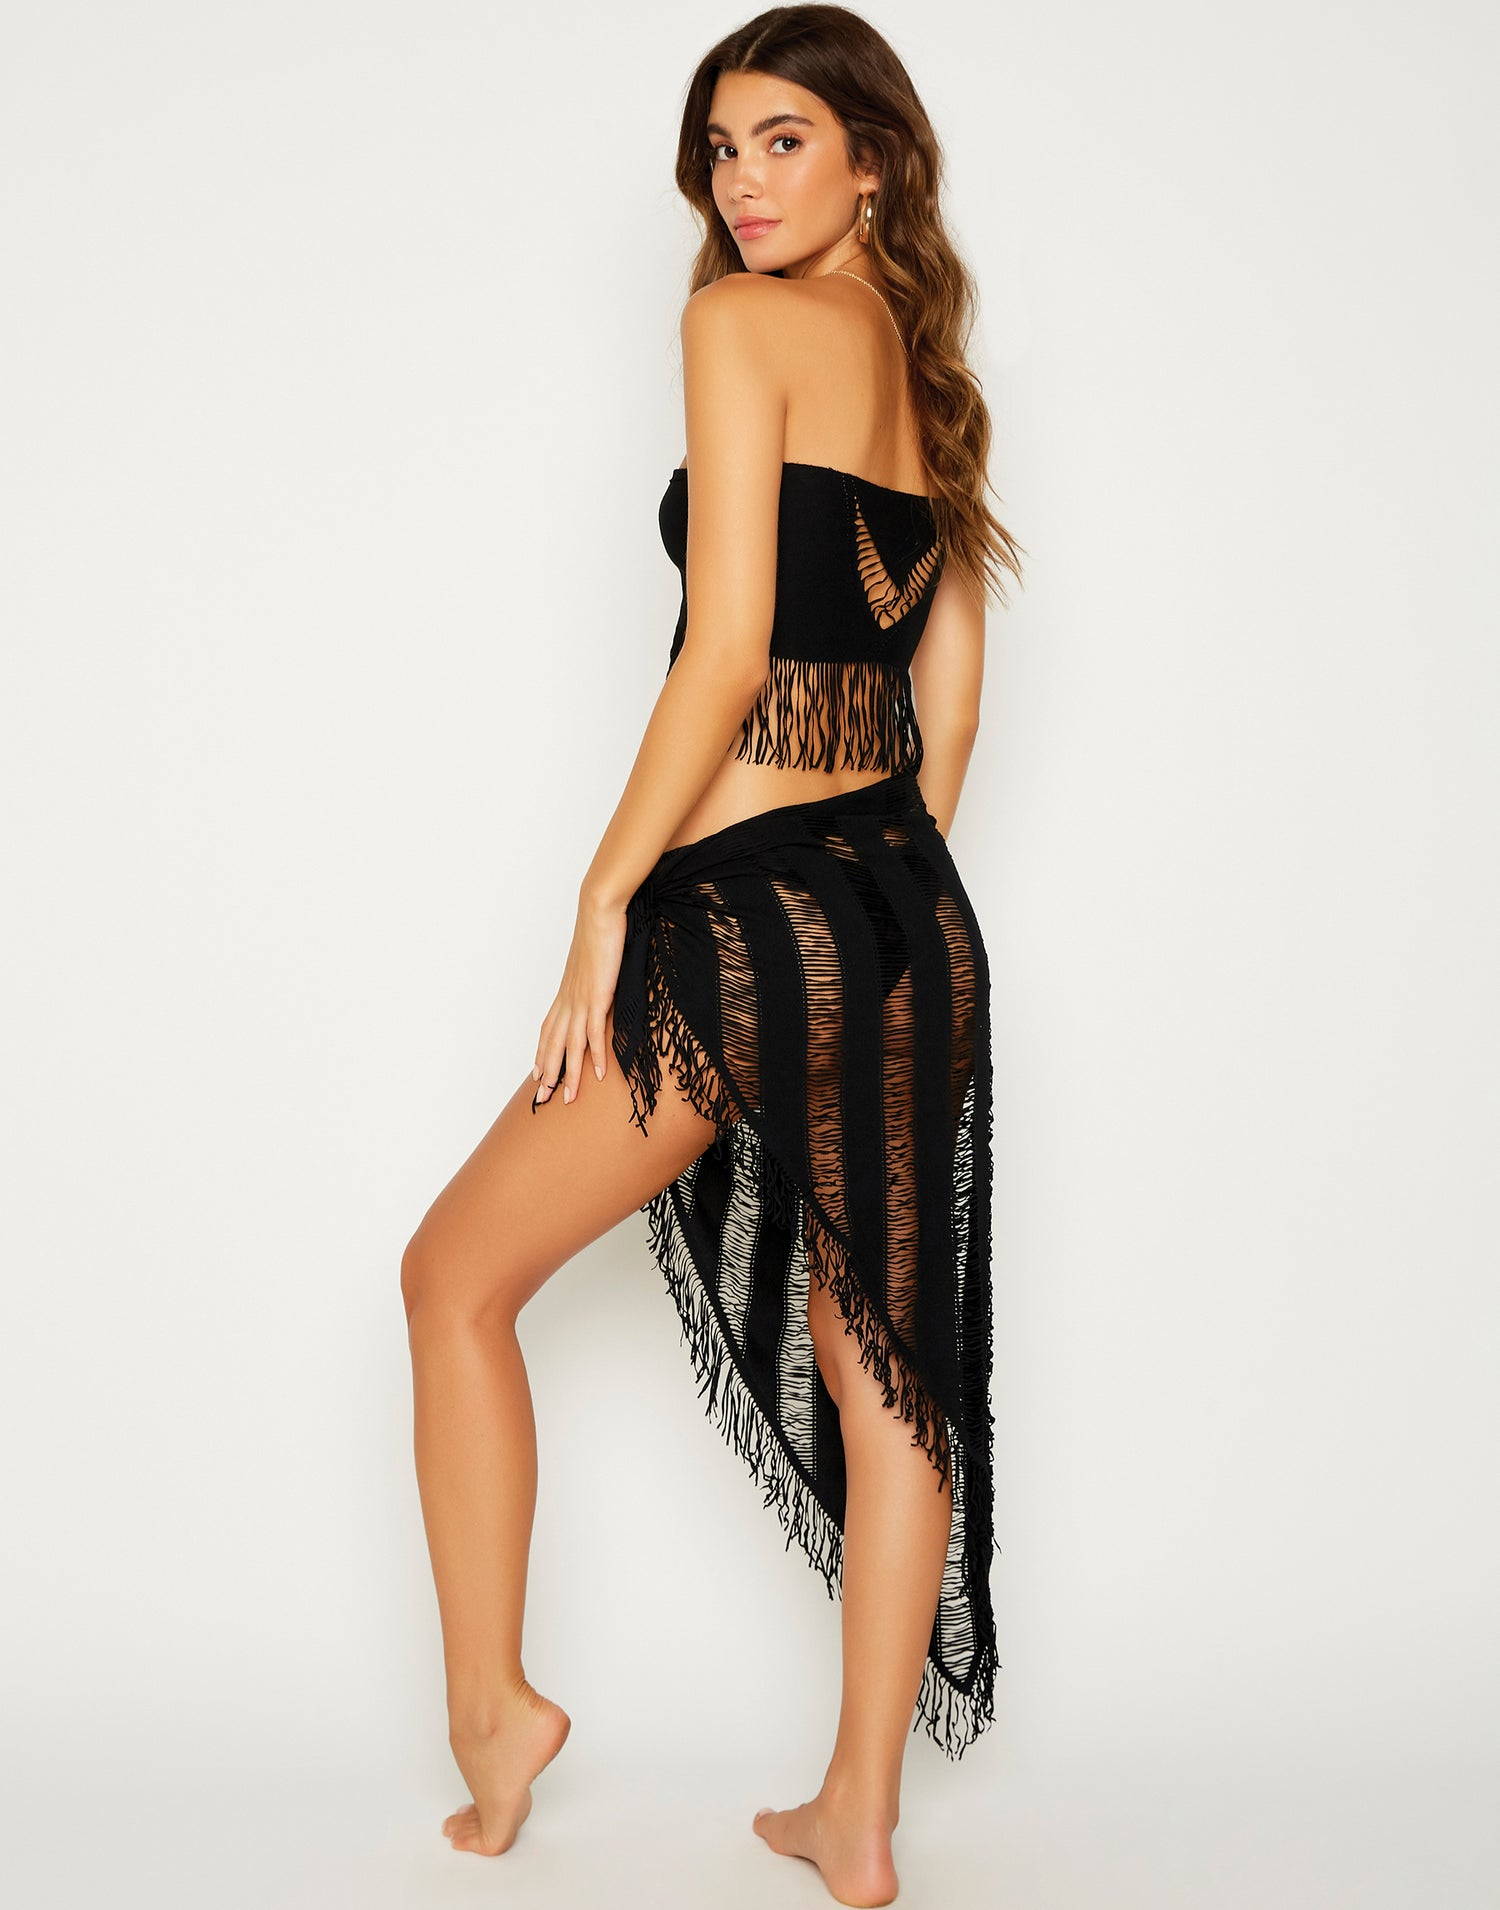 Indian Summer Sexy Bikini Cover Up Top in Black - back view